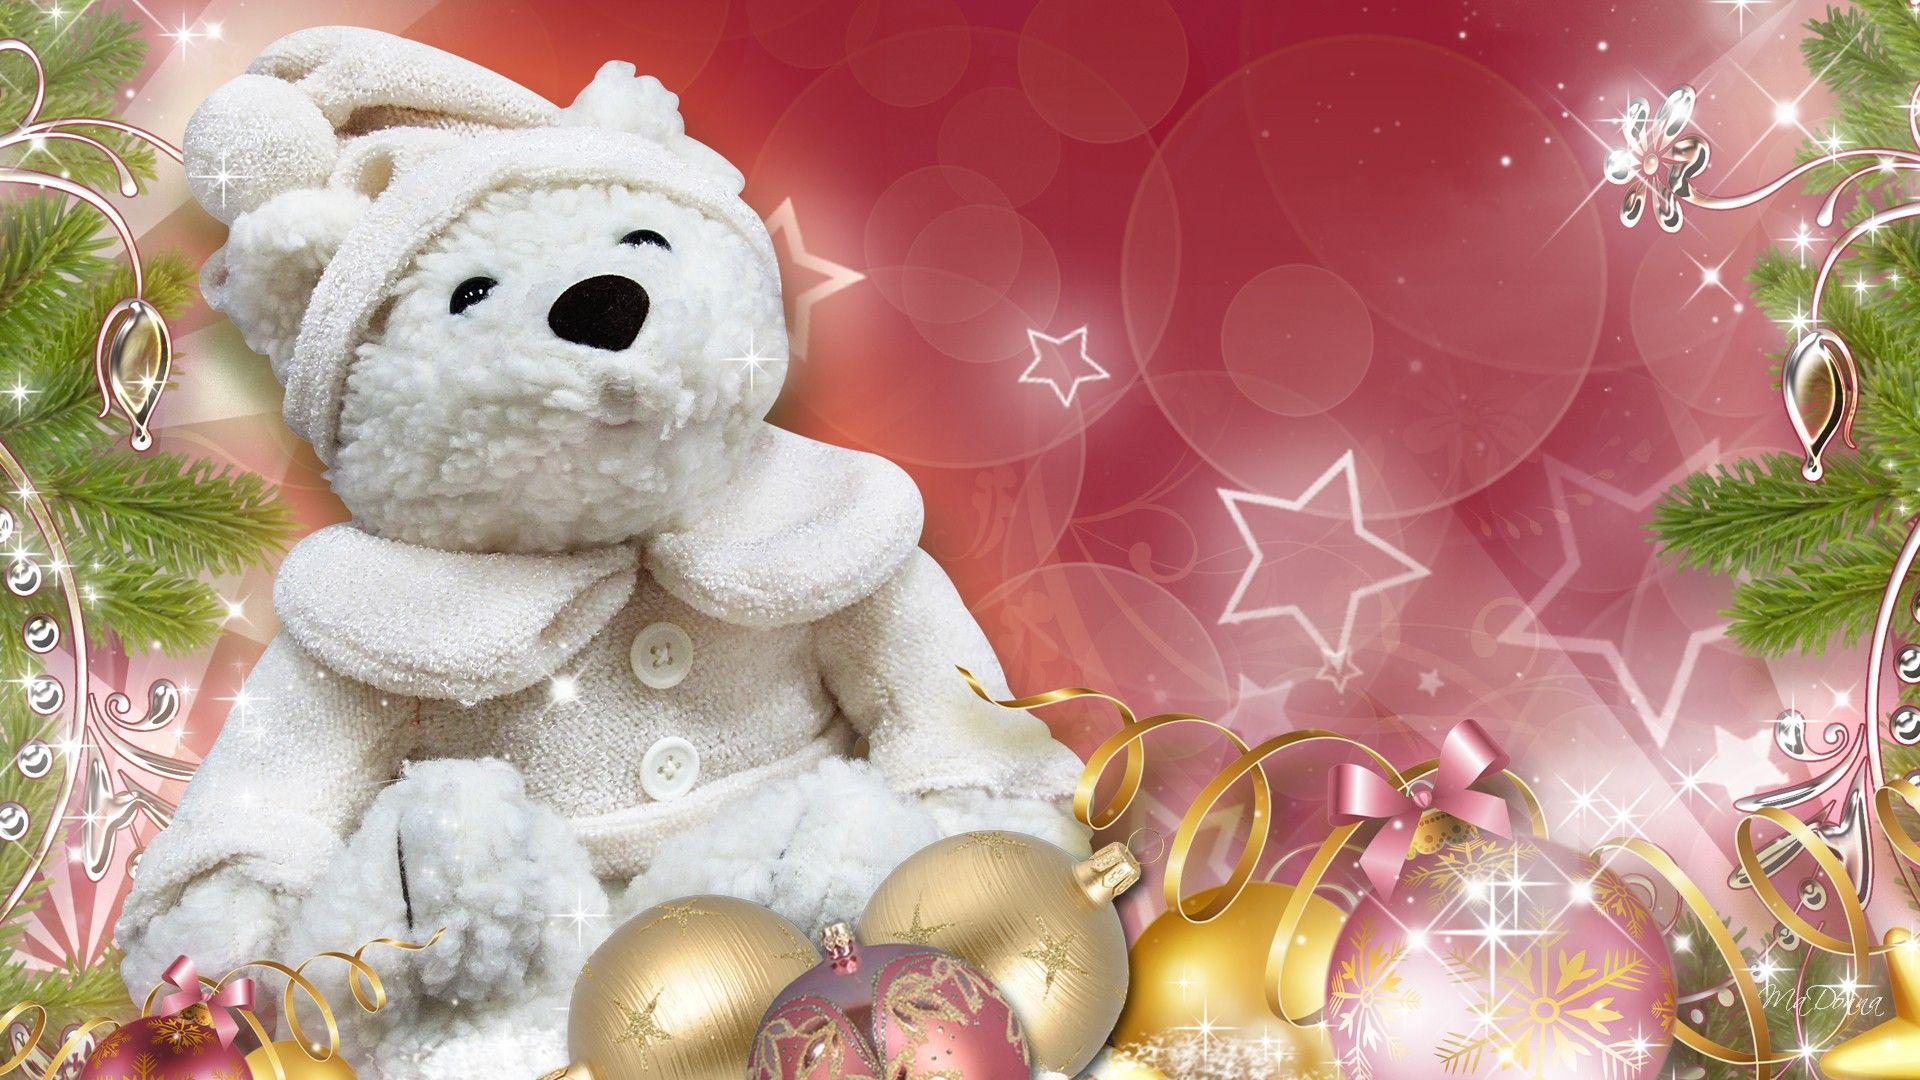 Christmas Teddy Bear Wallpaper: Christmas 2018 HD Wallpapers Wallpapers